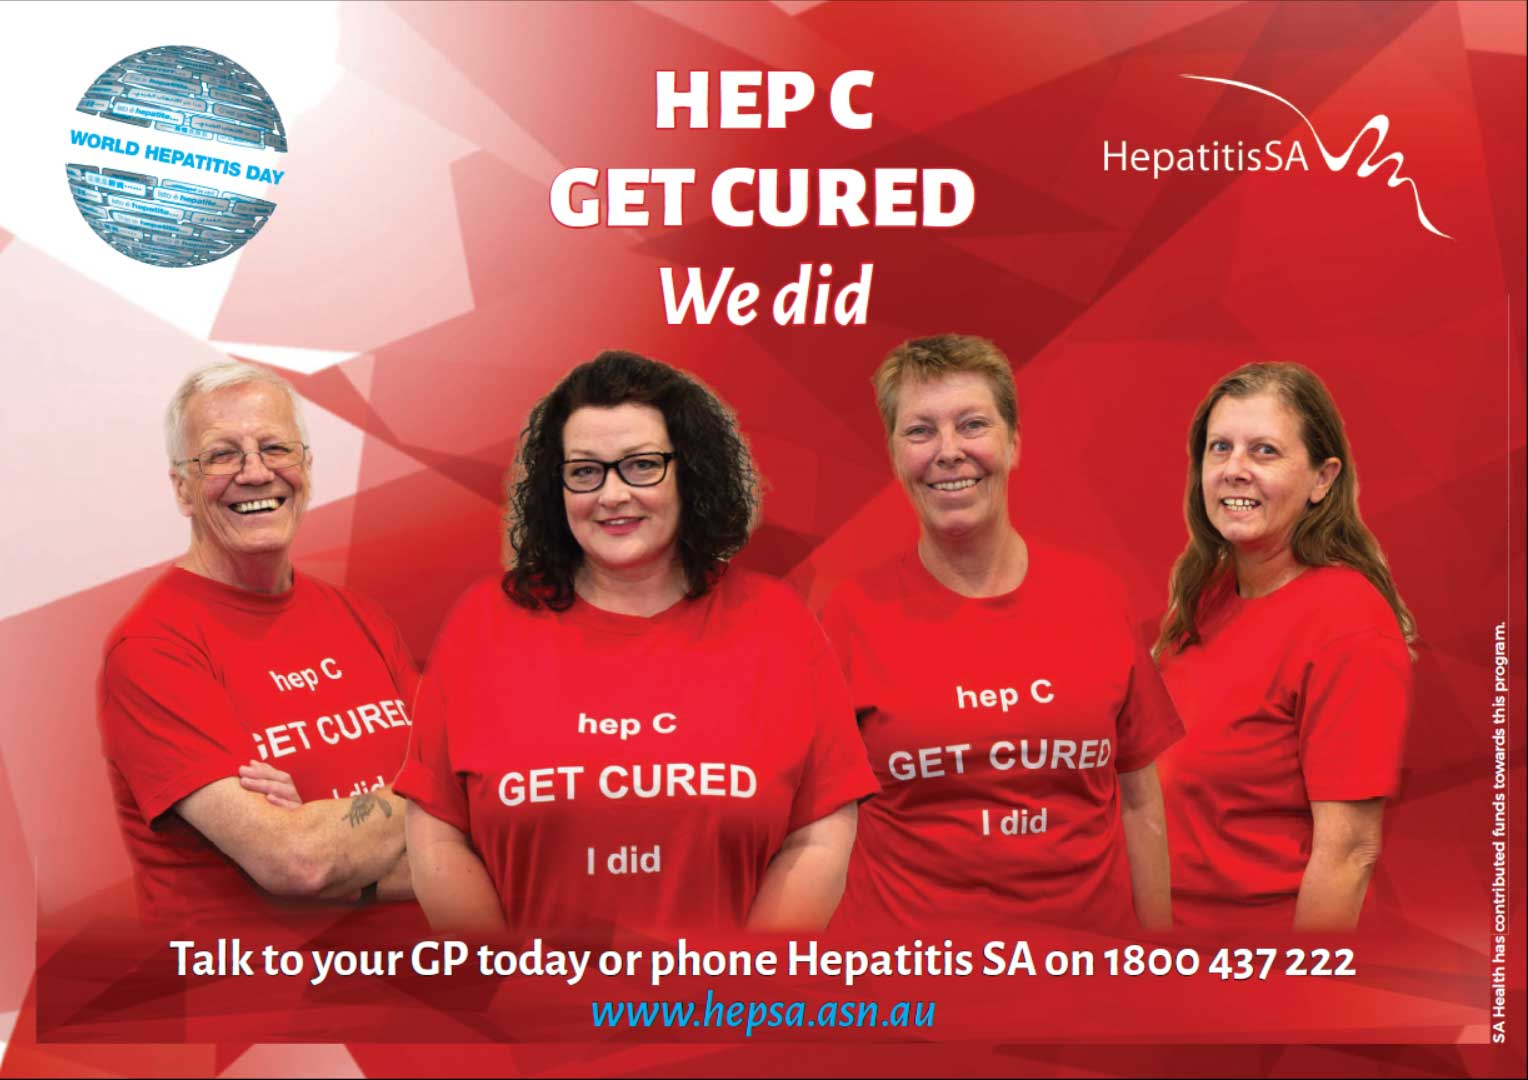 Hep C Get Cured poster